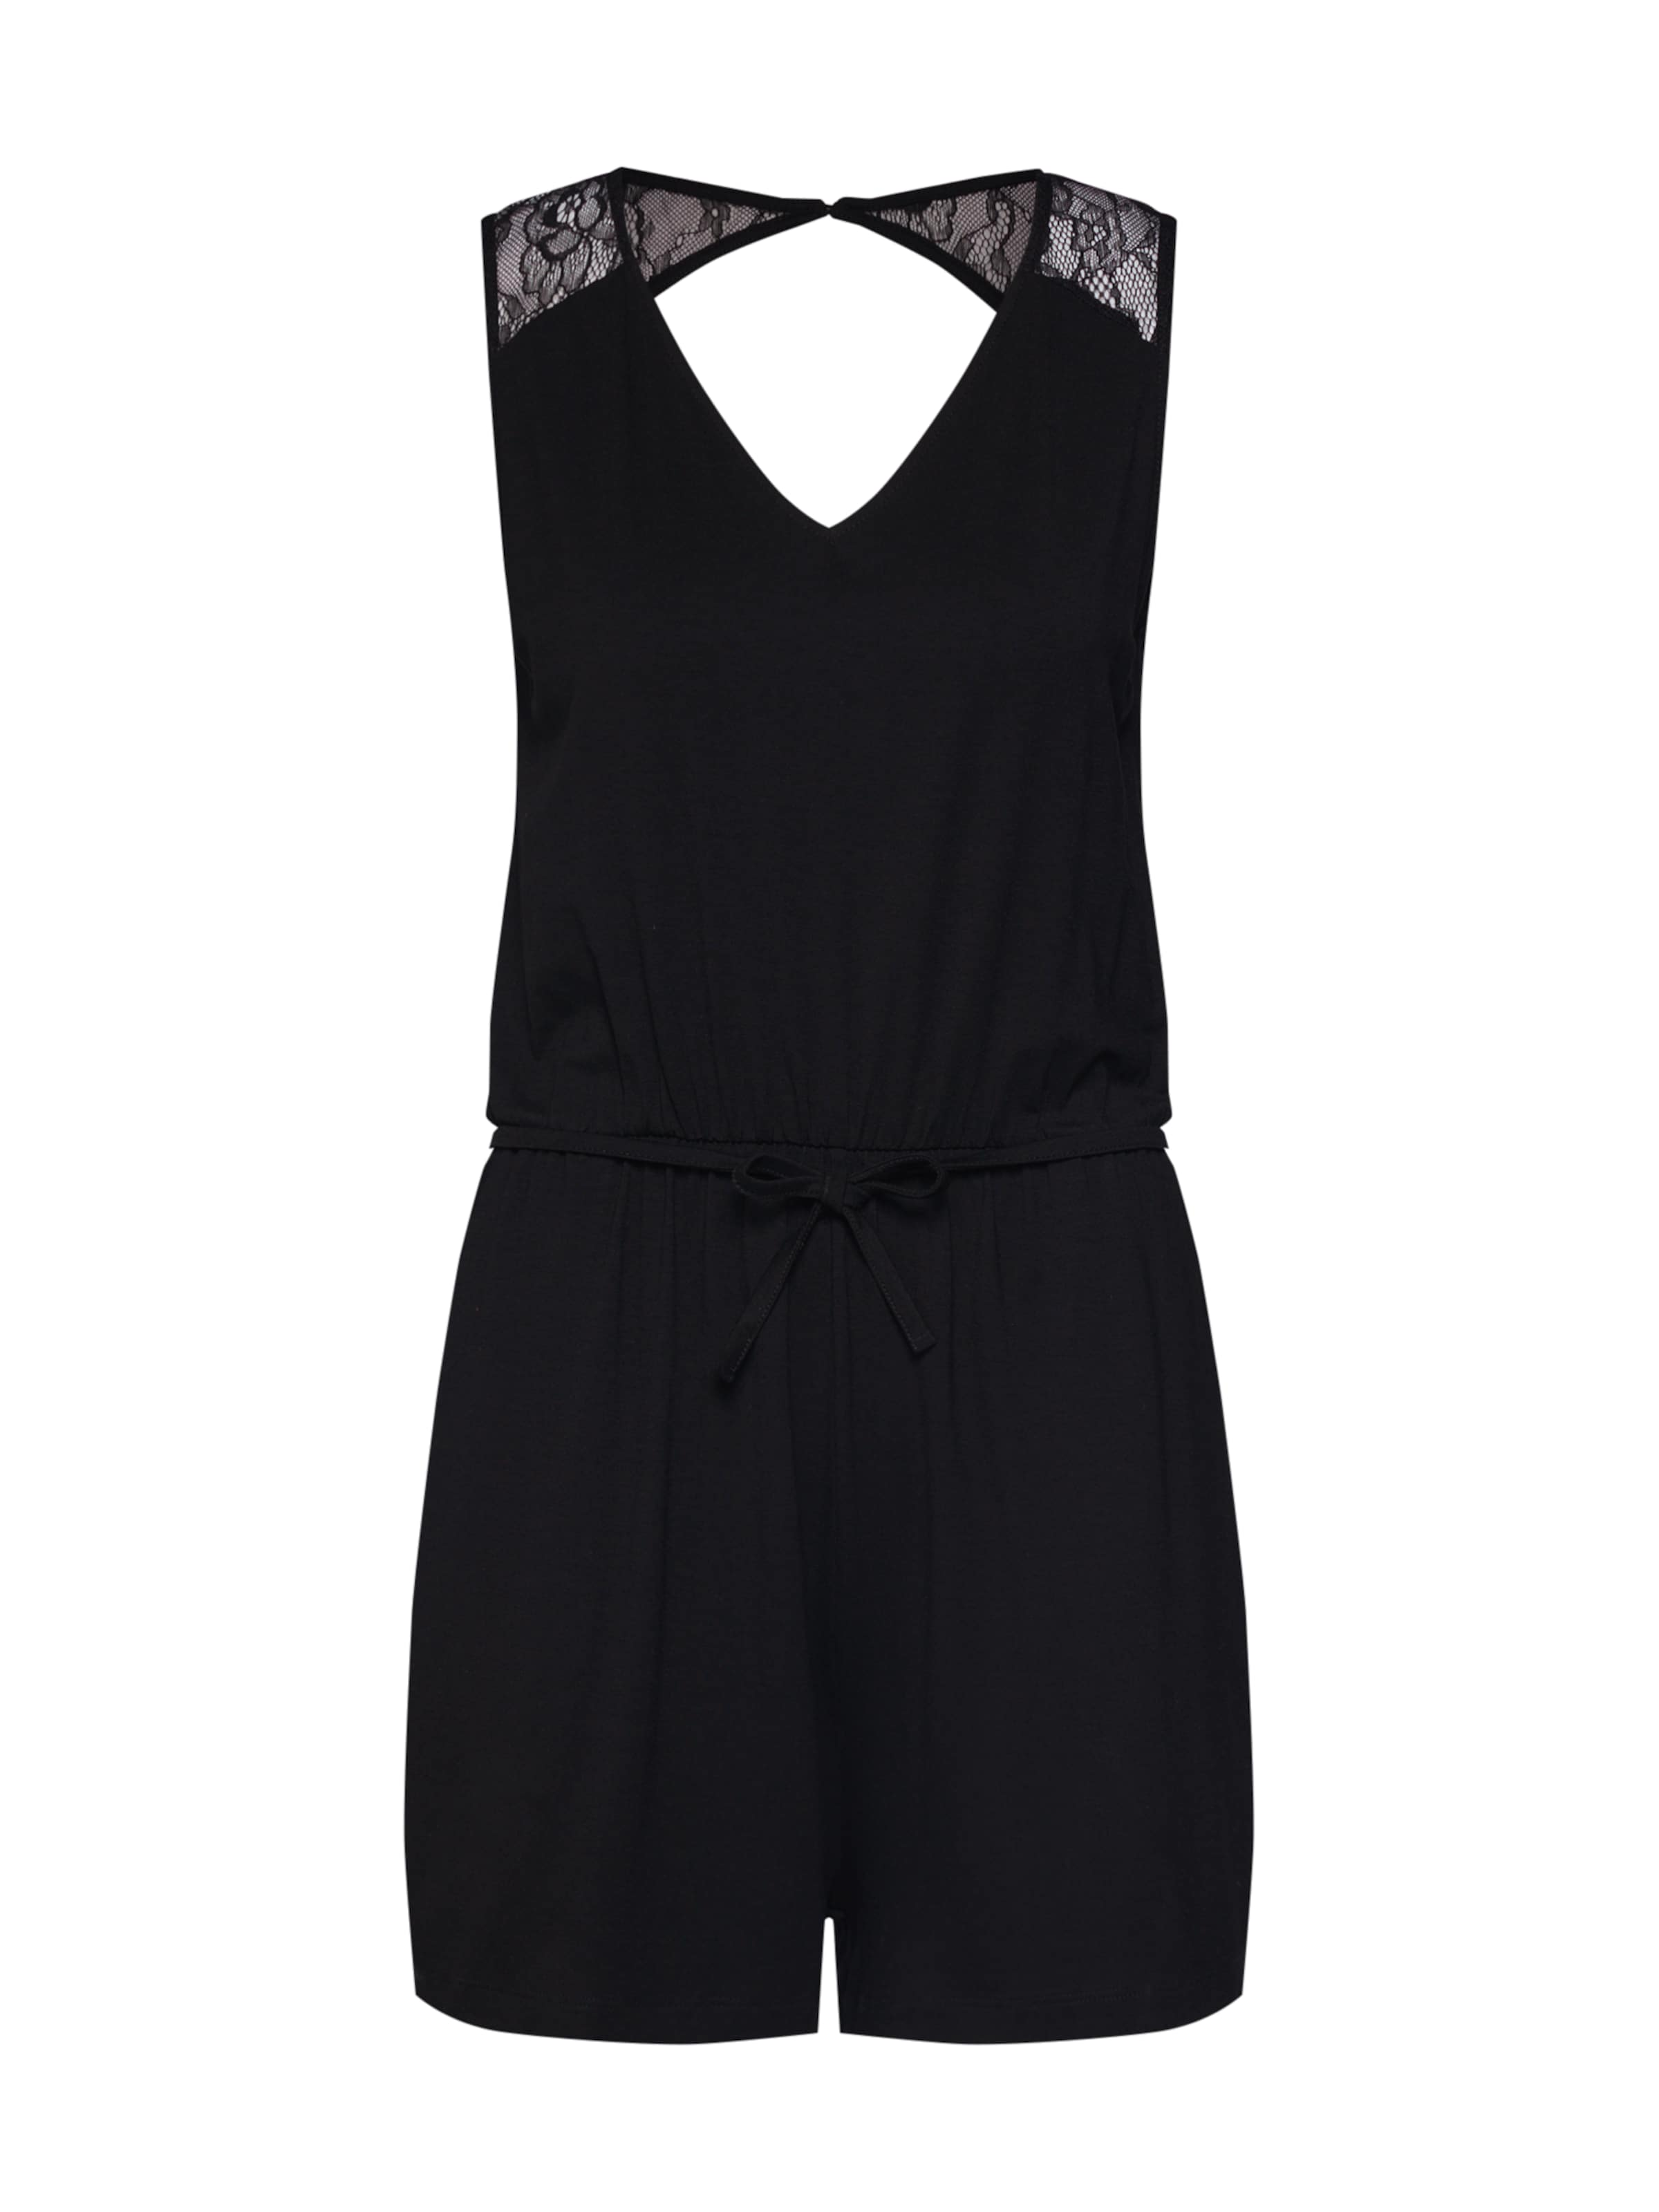 Schwarz About In 'perle' Jumpsuit You TJ3clKF1